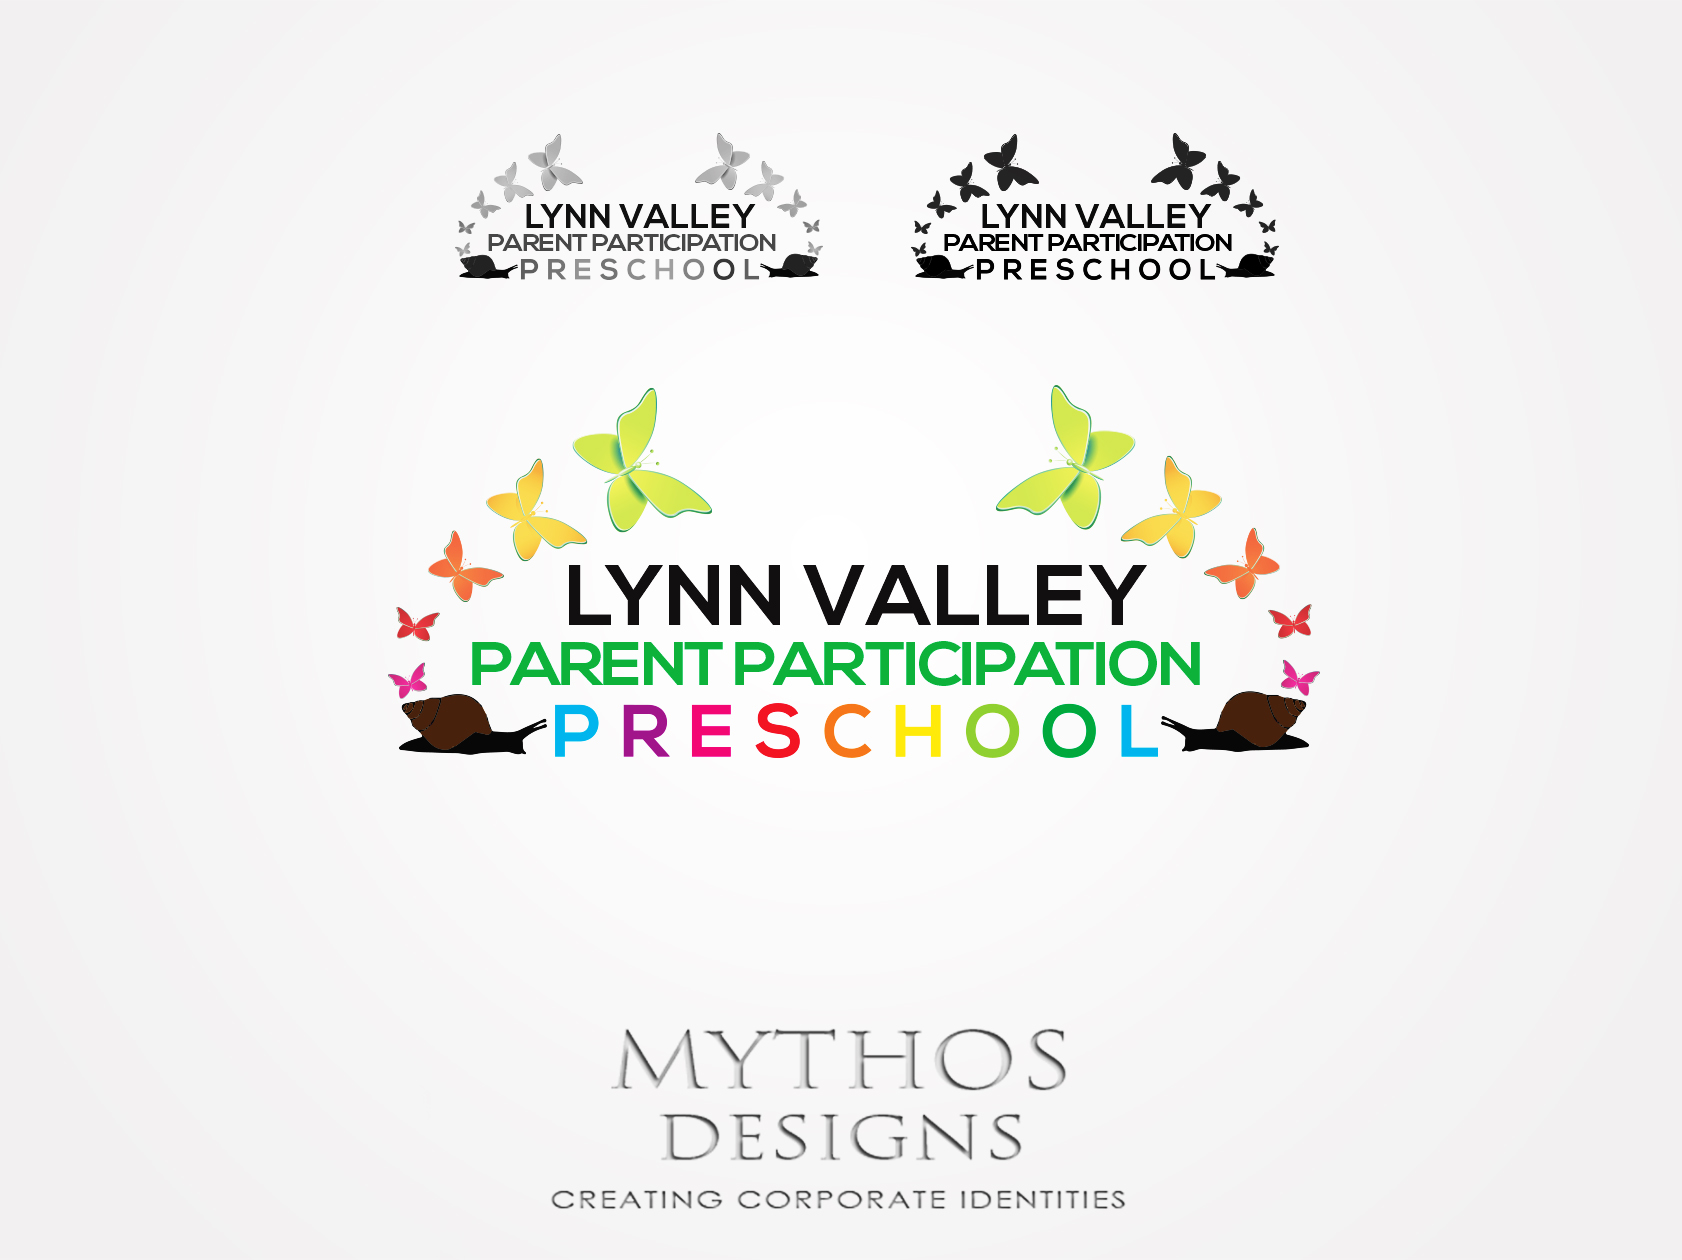 Logo Design by Mythos Designs - Entry No. 90 in the Logo Design Contest New Logo Design for Lynn Valley Parent Participation Preschool.